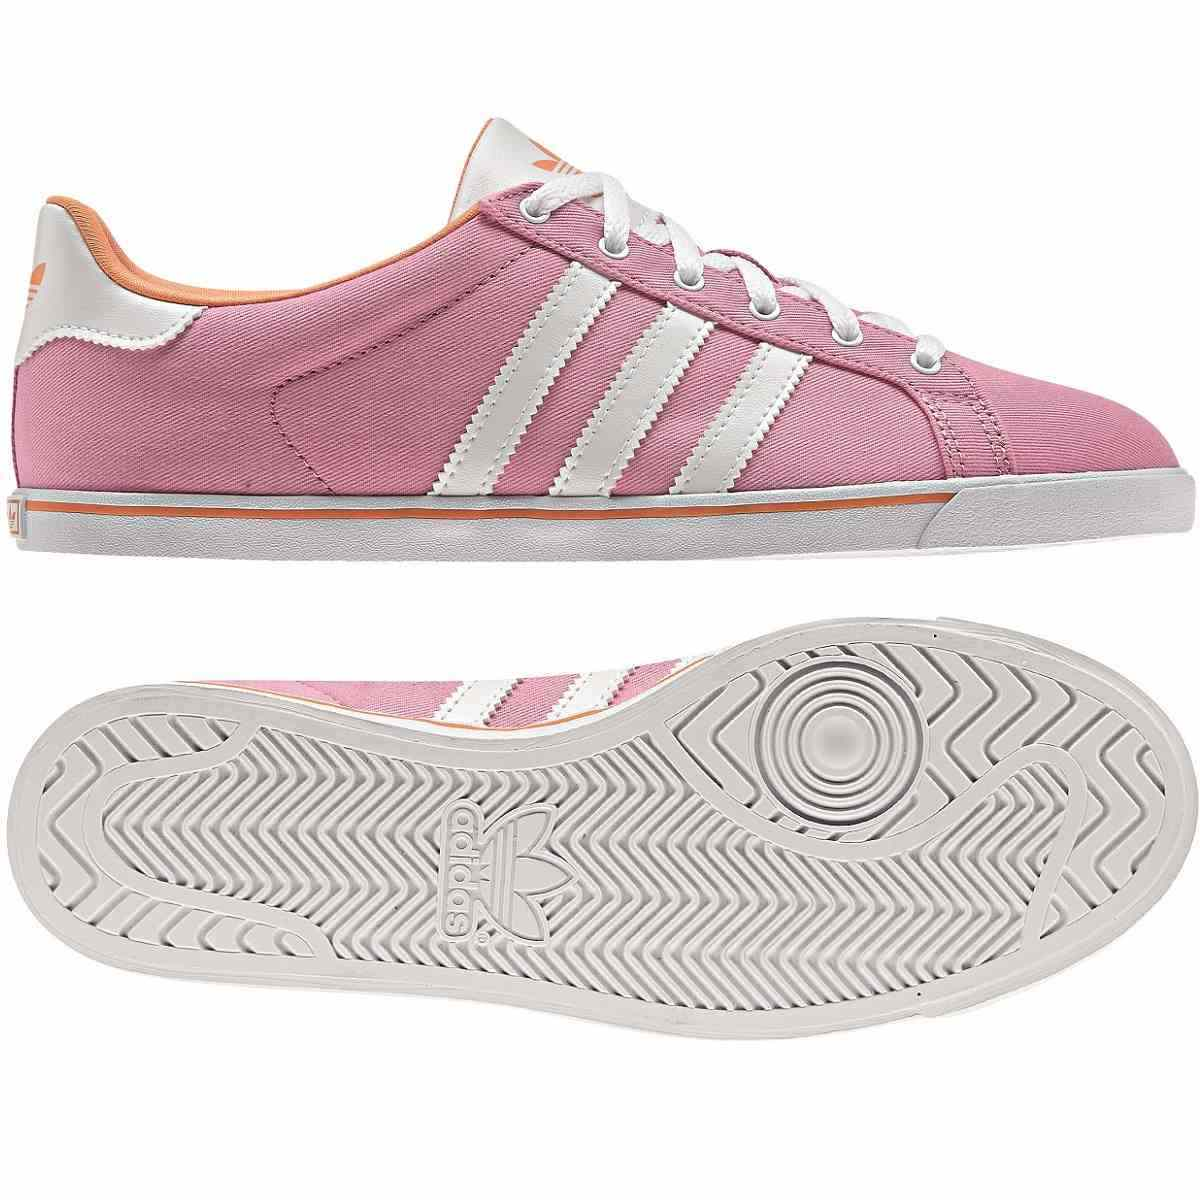 adidas turnschuhe damen rosa gress. Black Bedroom Furniture Sets. Home Design Ideas